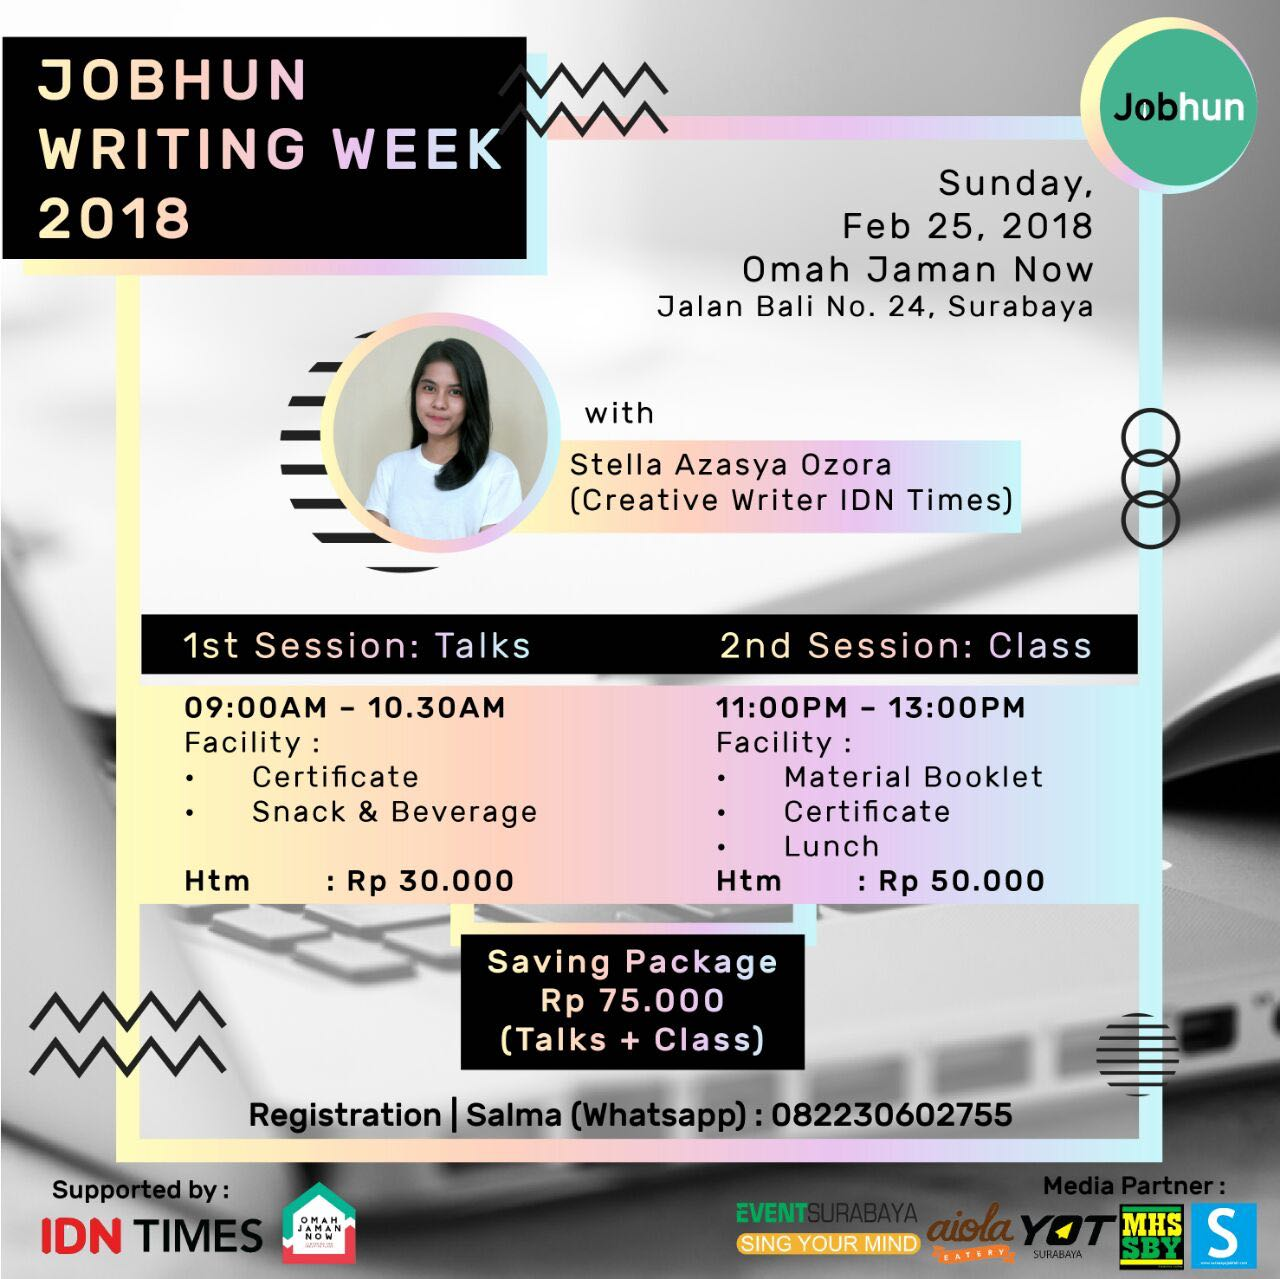 Jobhun Writing Week